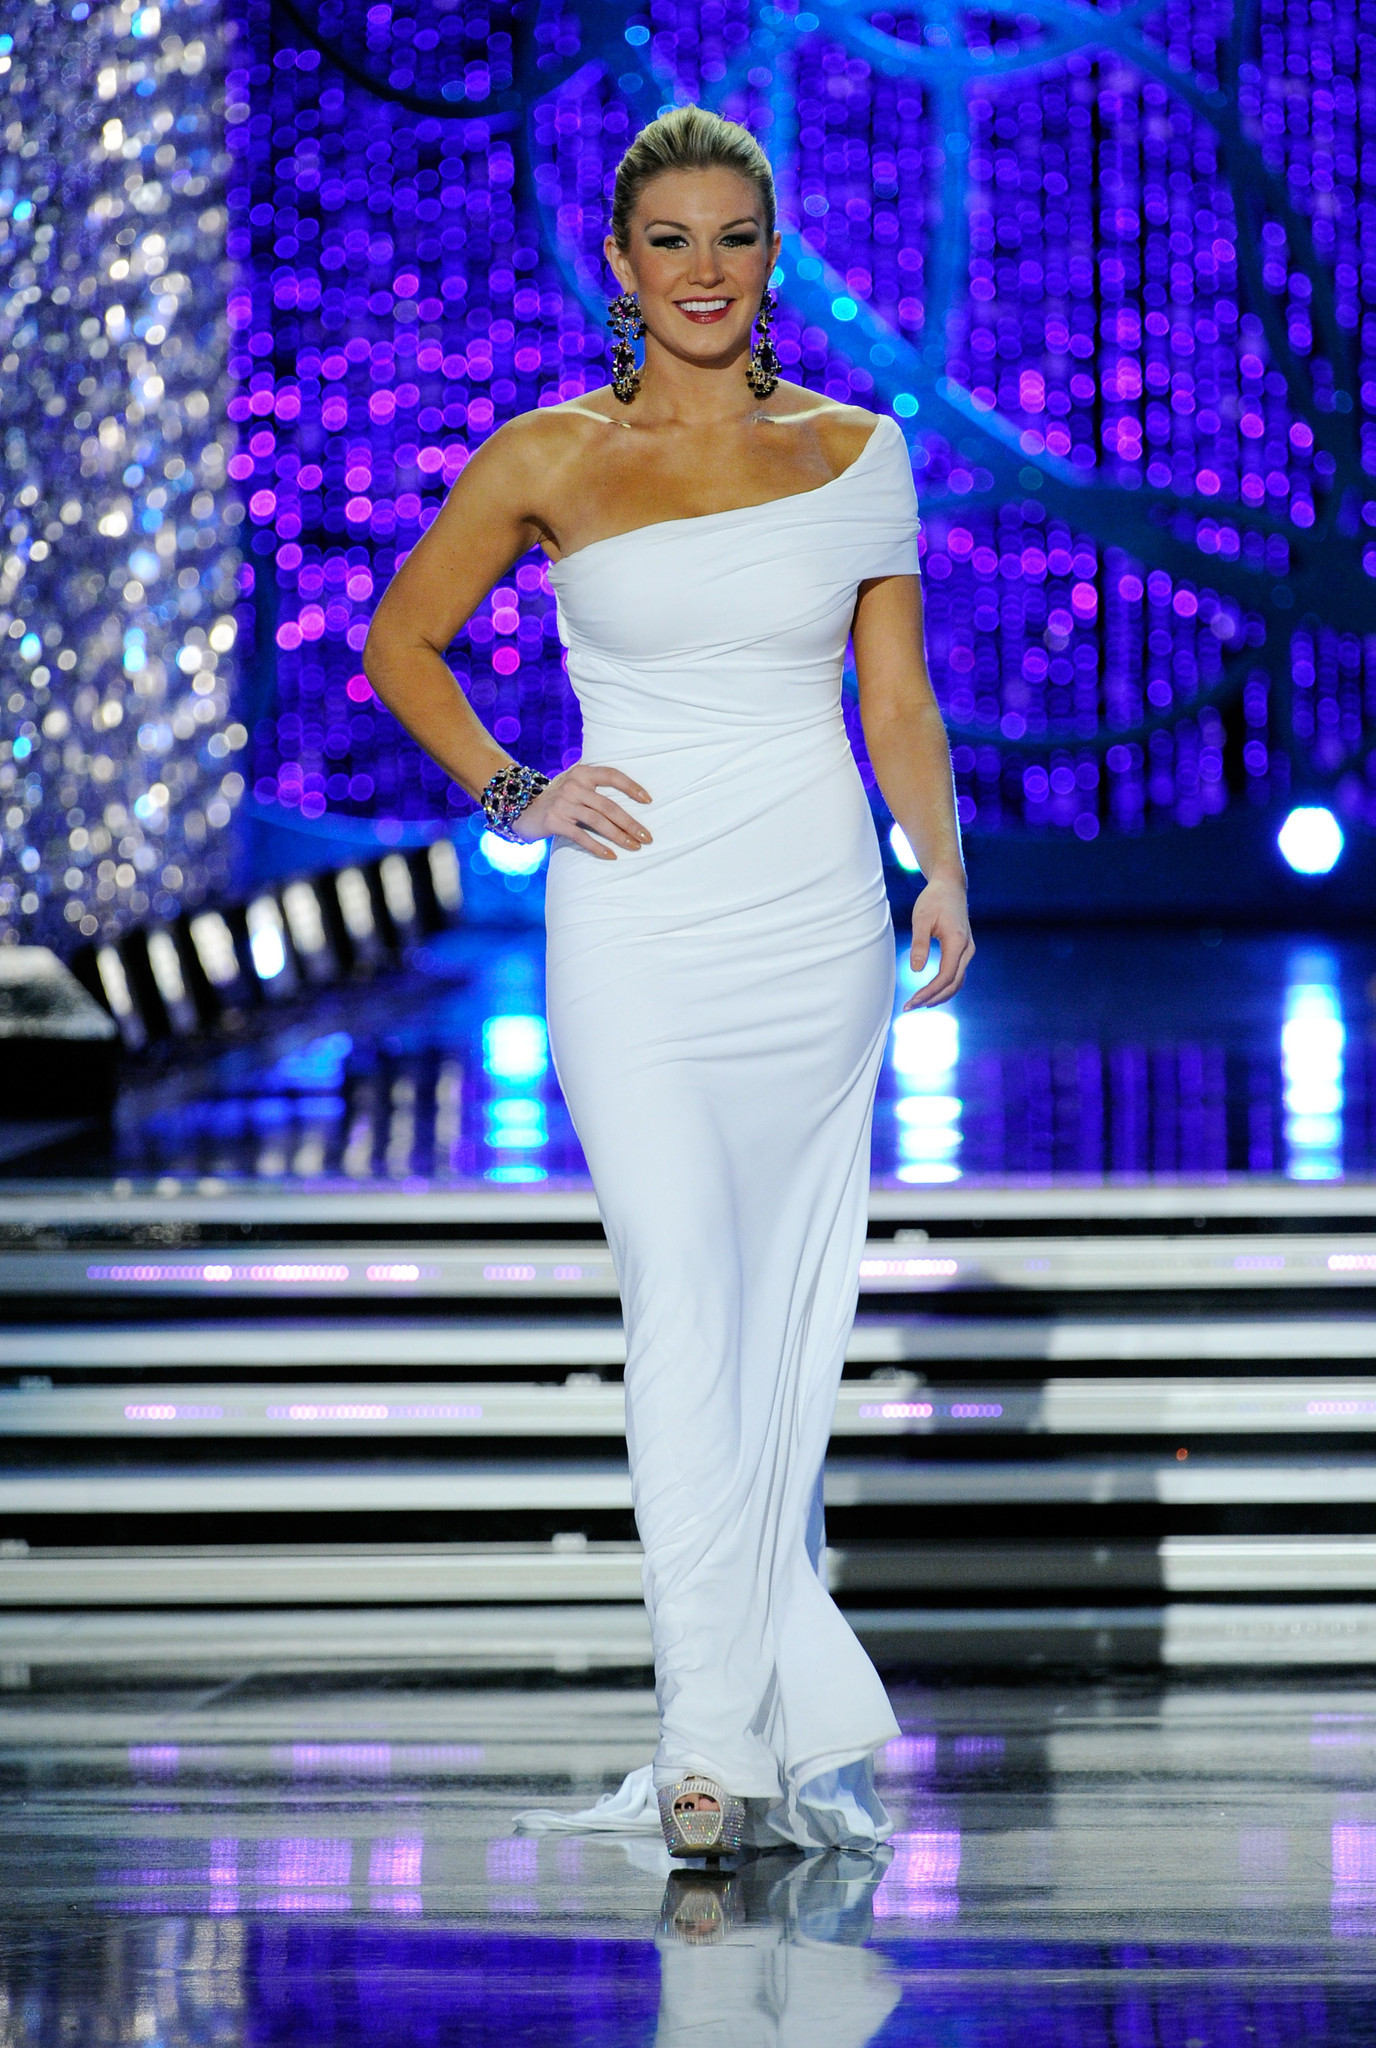 Juan Carlos Pinera winning gown for Miss America - southflorida.com